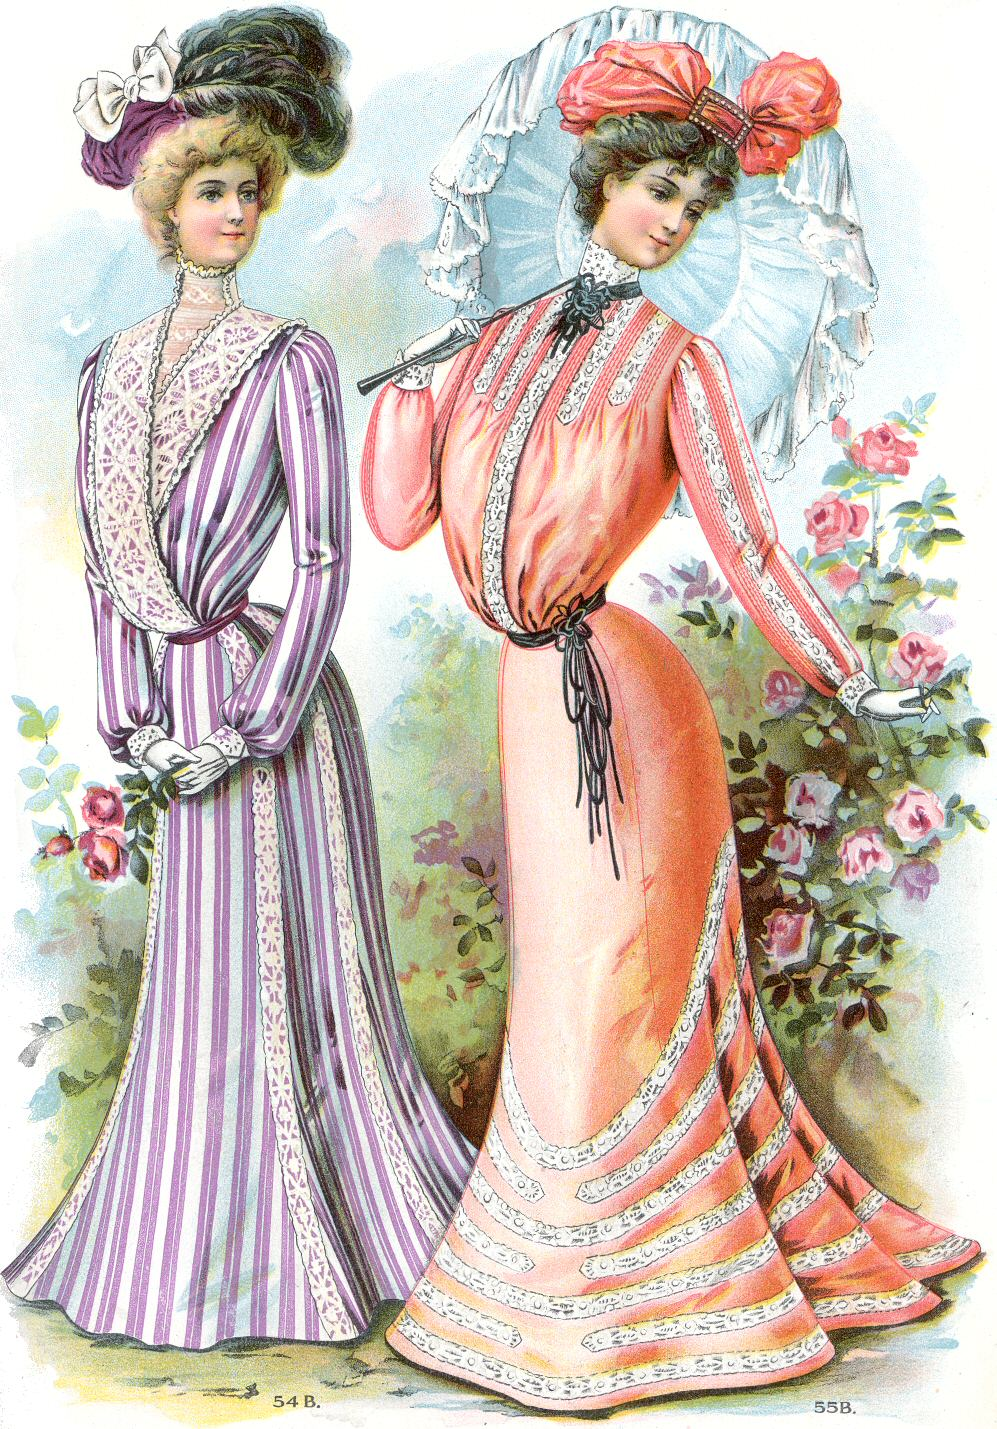 Edwardian Fashion: The S-silhouette at its finest | The Fashion Folks